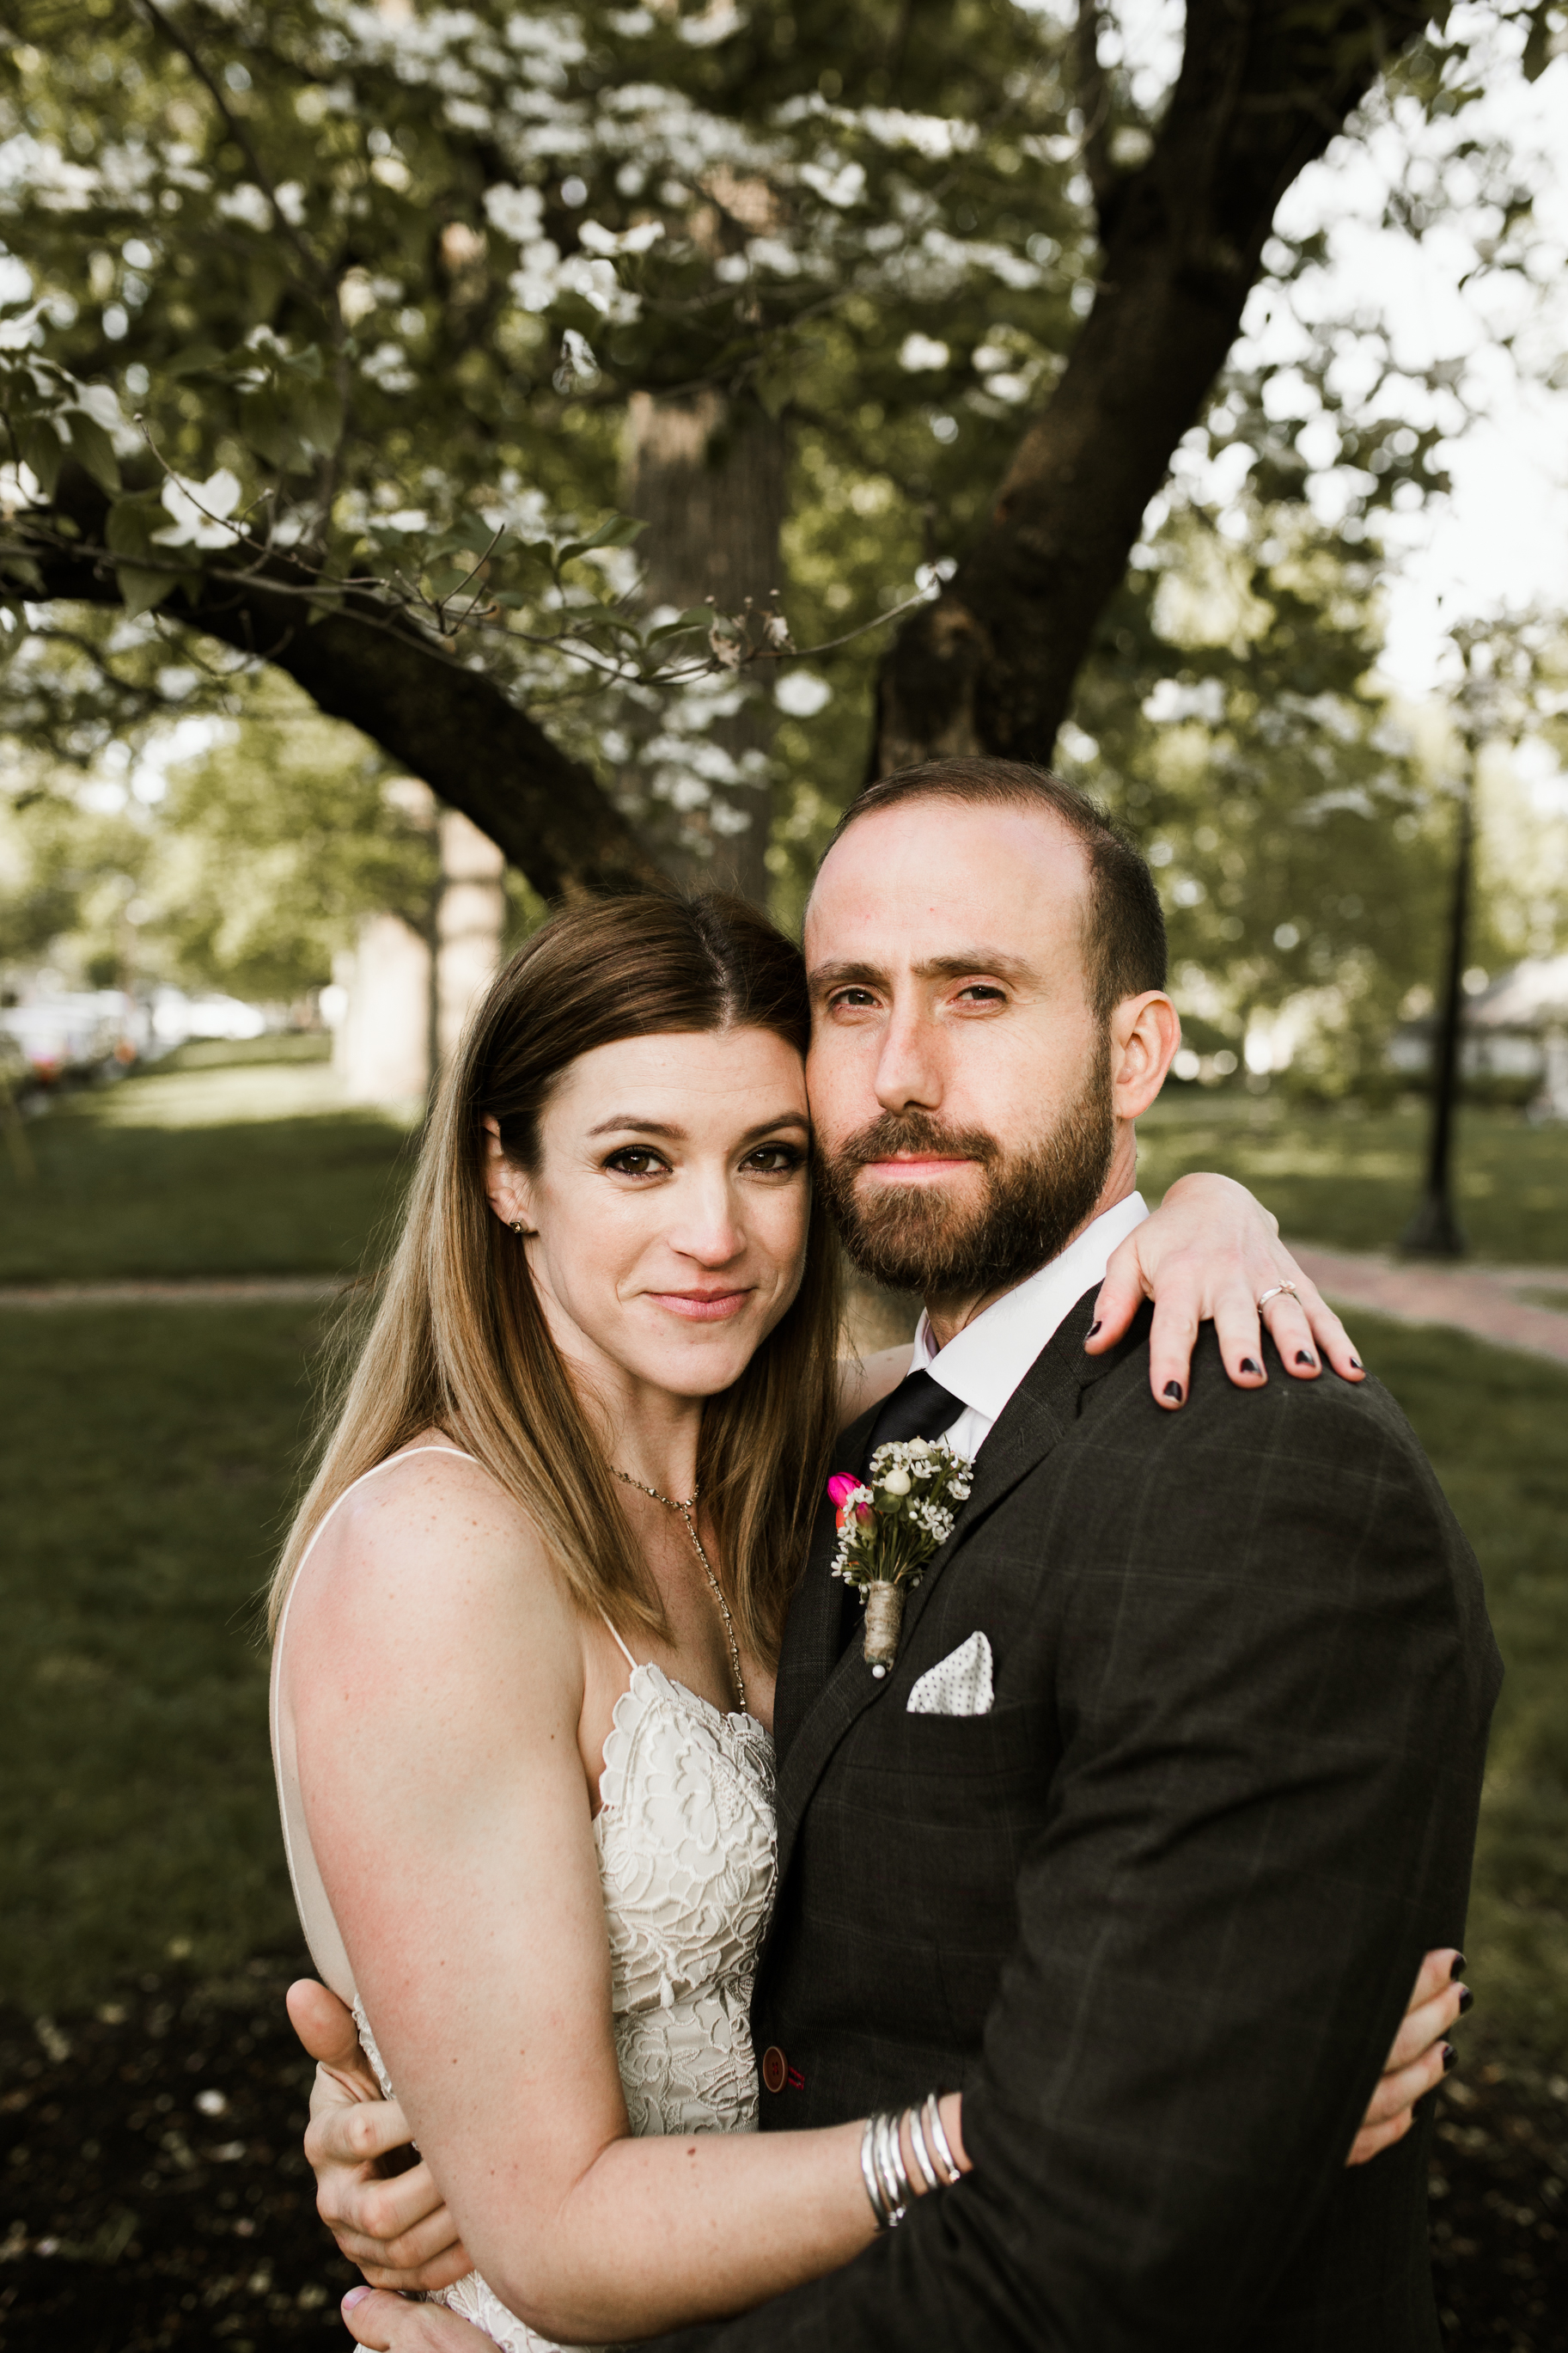 Louisville Courthouse Wedding Louisville Wedding Photographer 2018 Crystal Ludwick Photo Louisville Wedding Photographer Kentucky Wedding Photographer (60 of 76).jpg